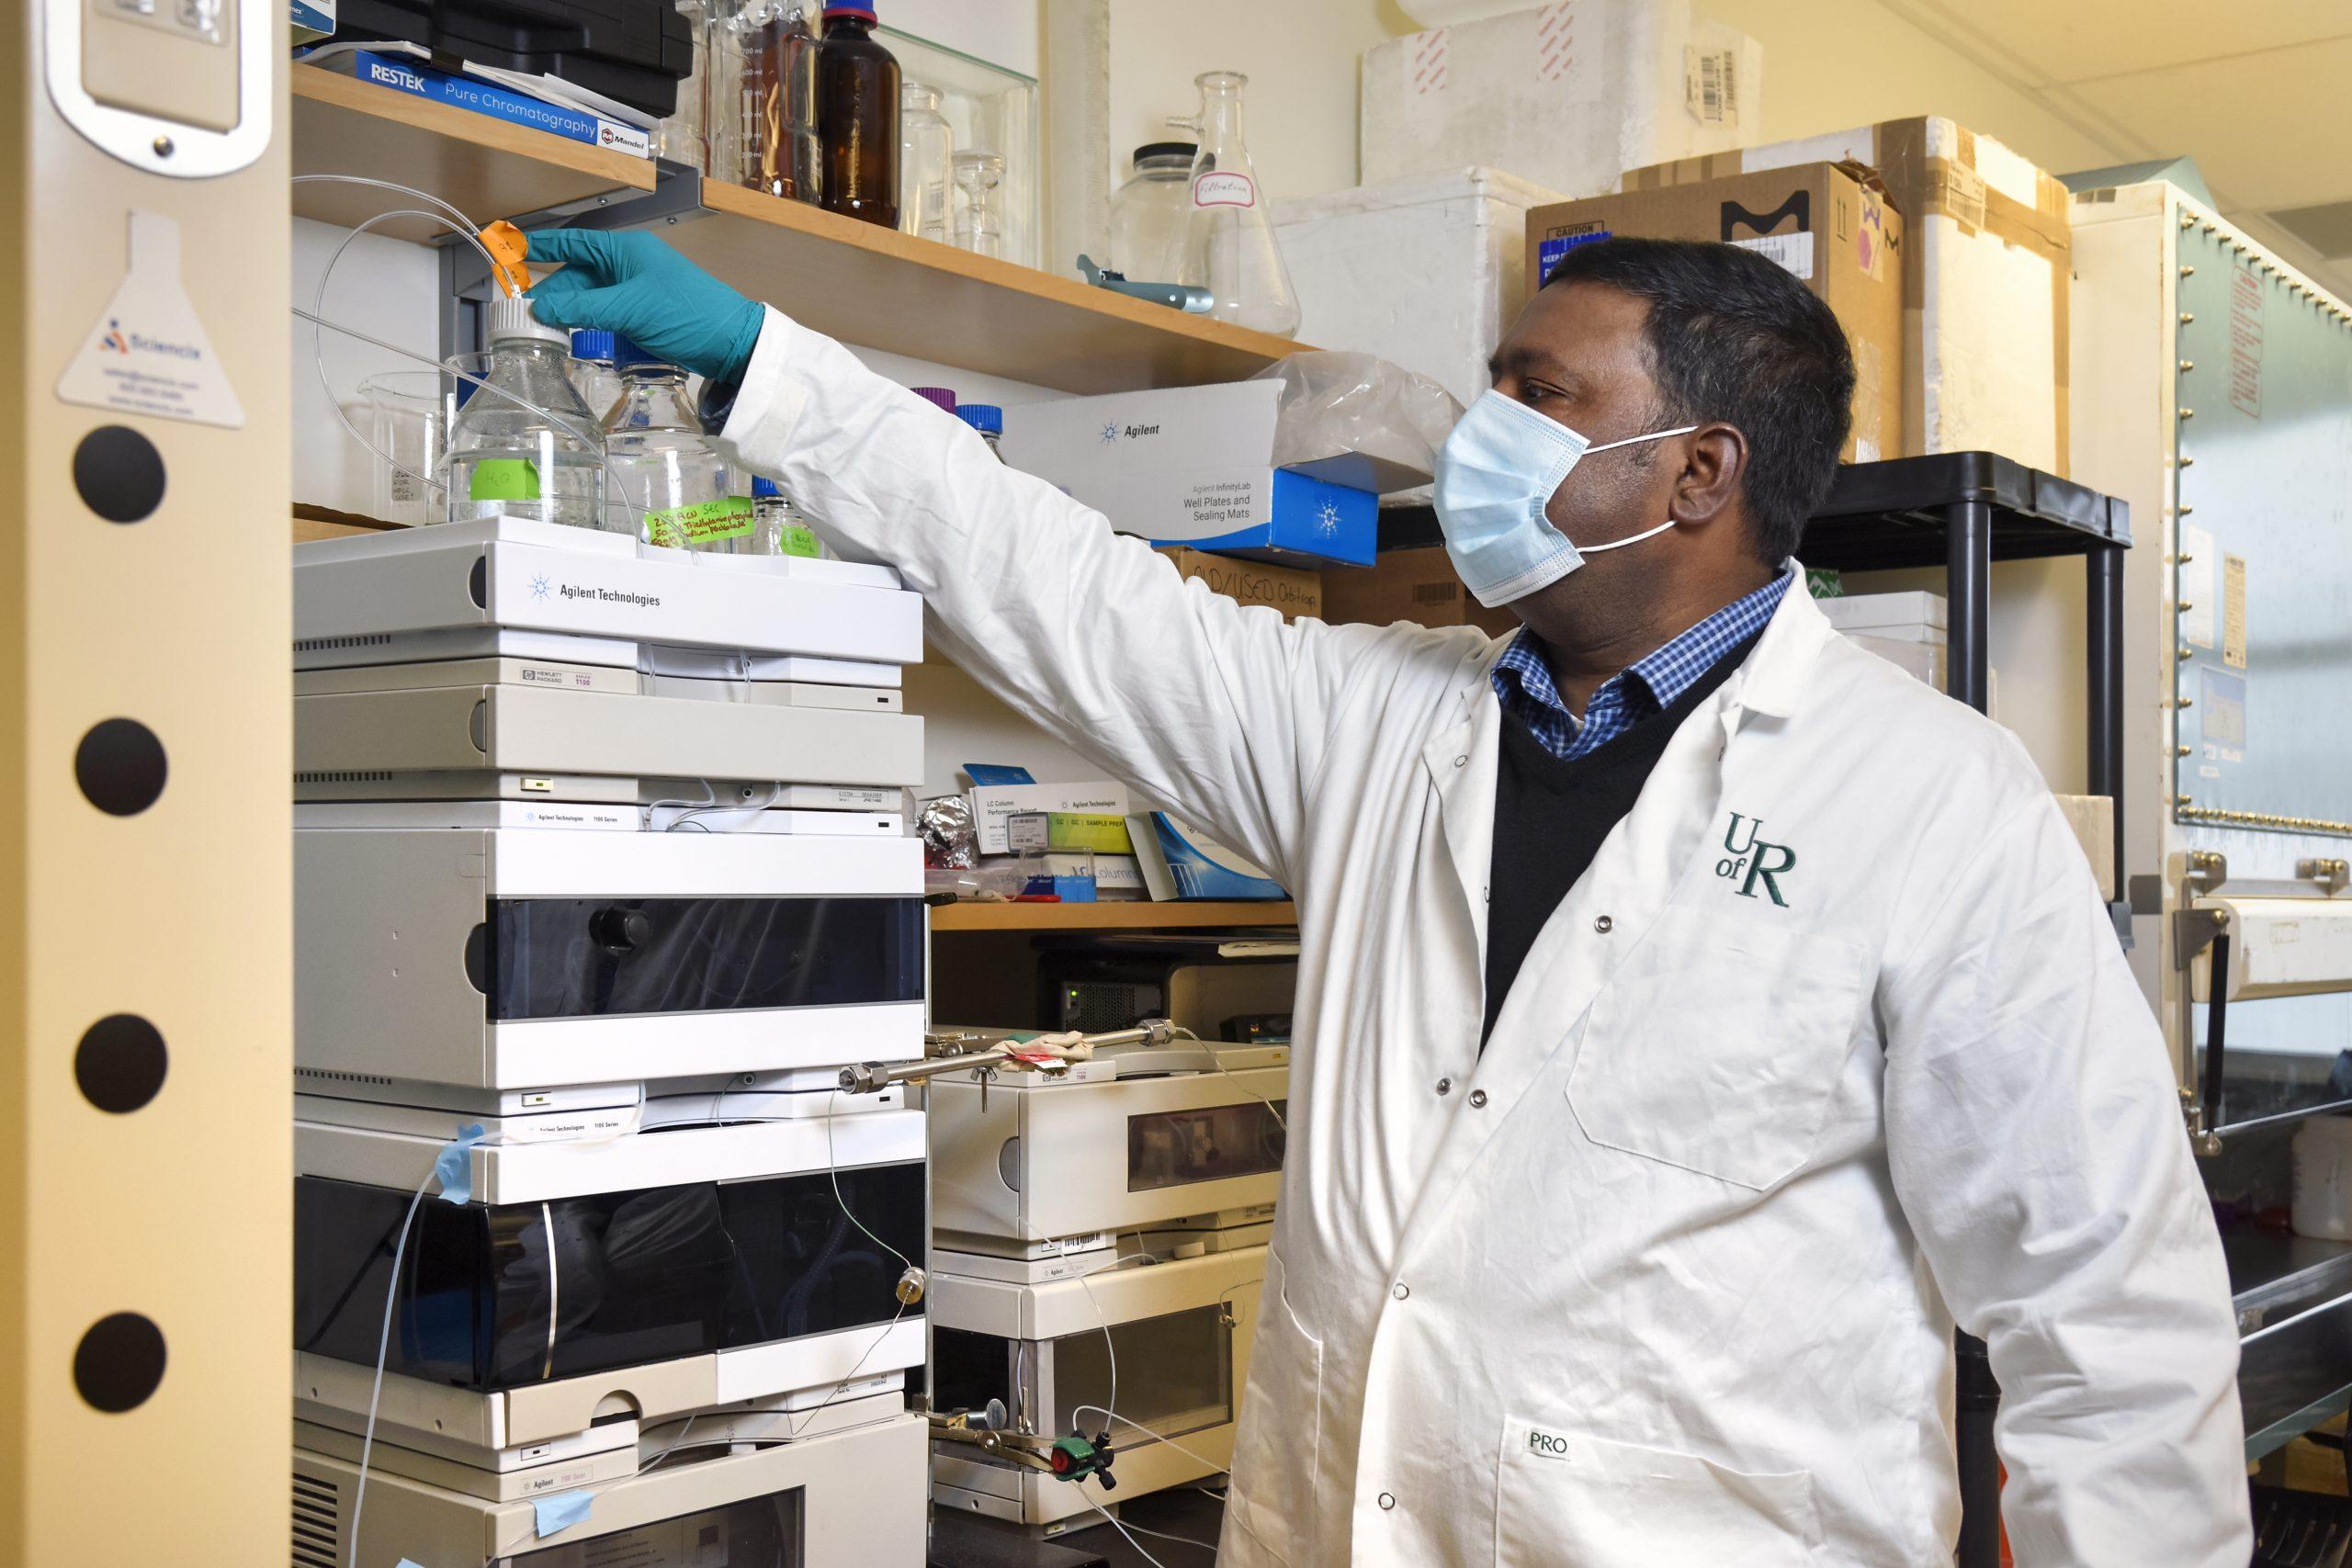 Biochemist Dr. Mohan Babu in his University of Regina lab processing samples in the high performance liquid chromatography (HPLC) machine. HPLC is a technique in analytical chemistry used to separate, identify, and quantify each component in a liquid mixture. (Photo by Trevor Hopkin)